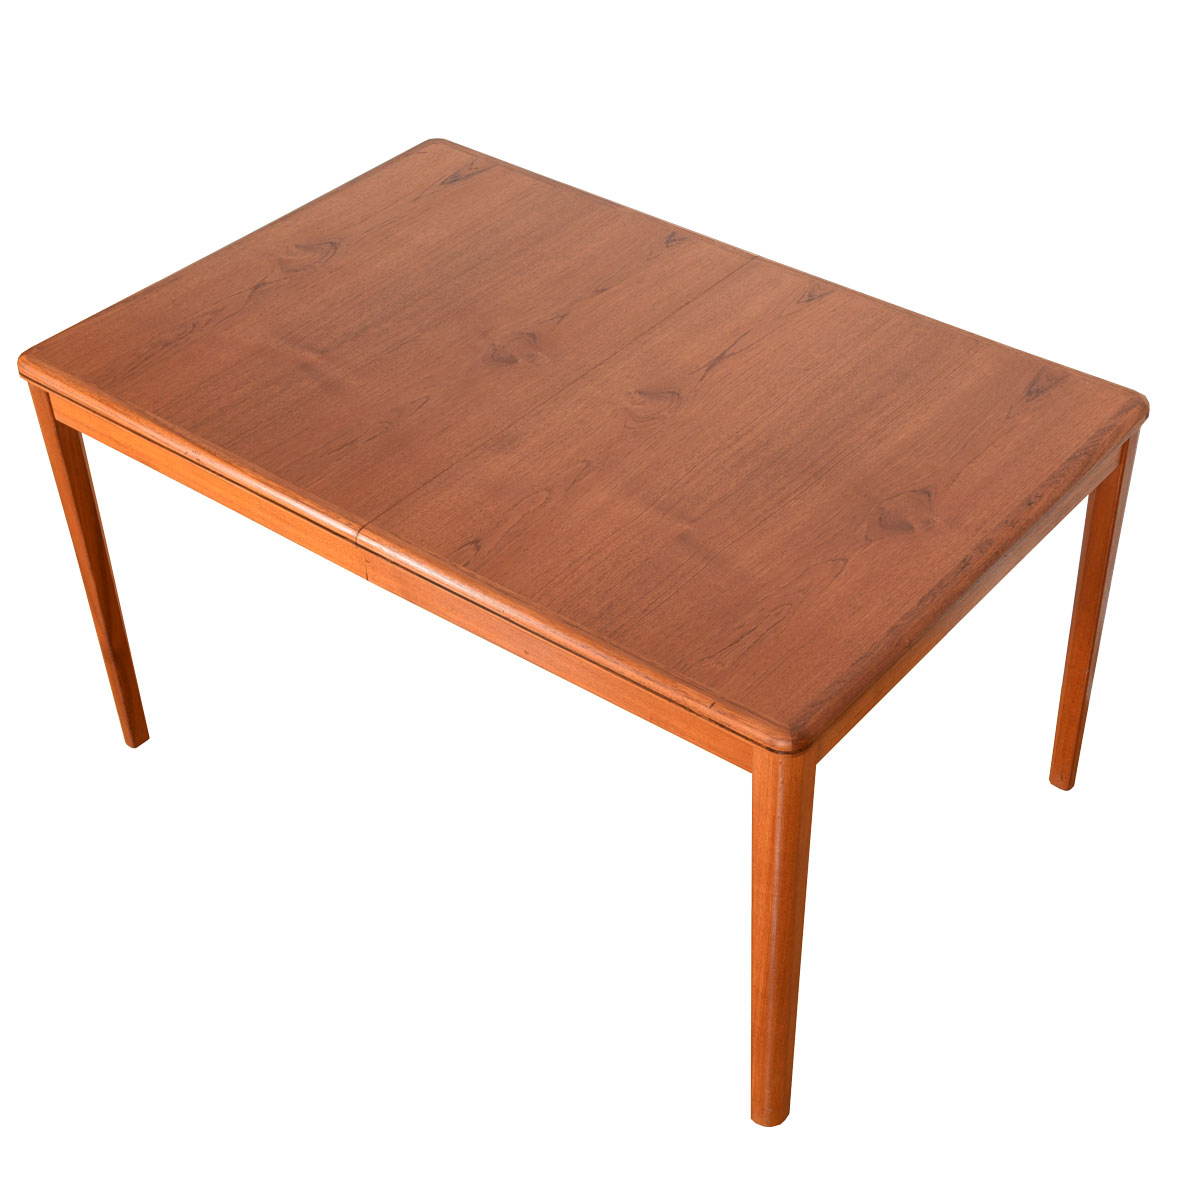 Swedish Mid-Sized Teak Expanding Dining Table